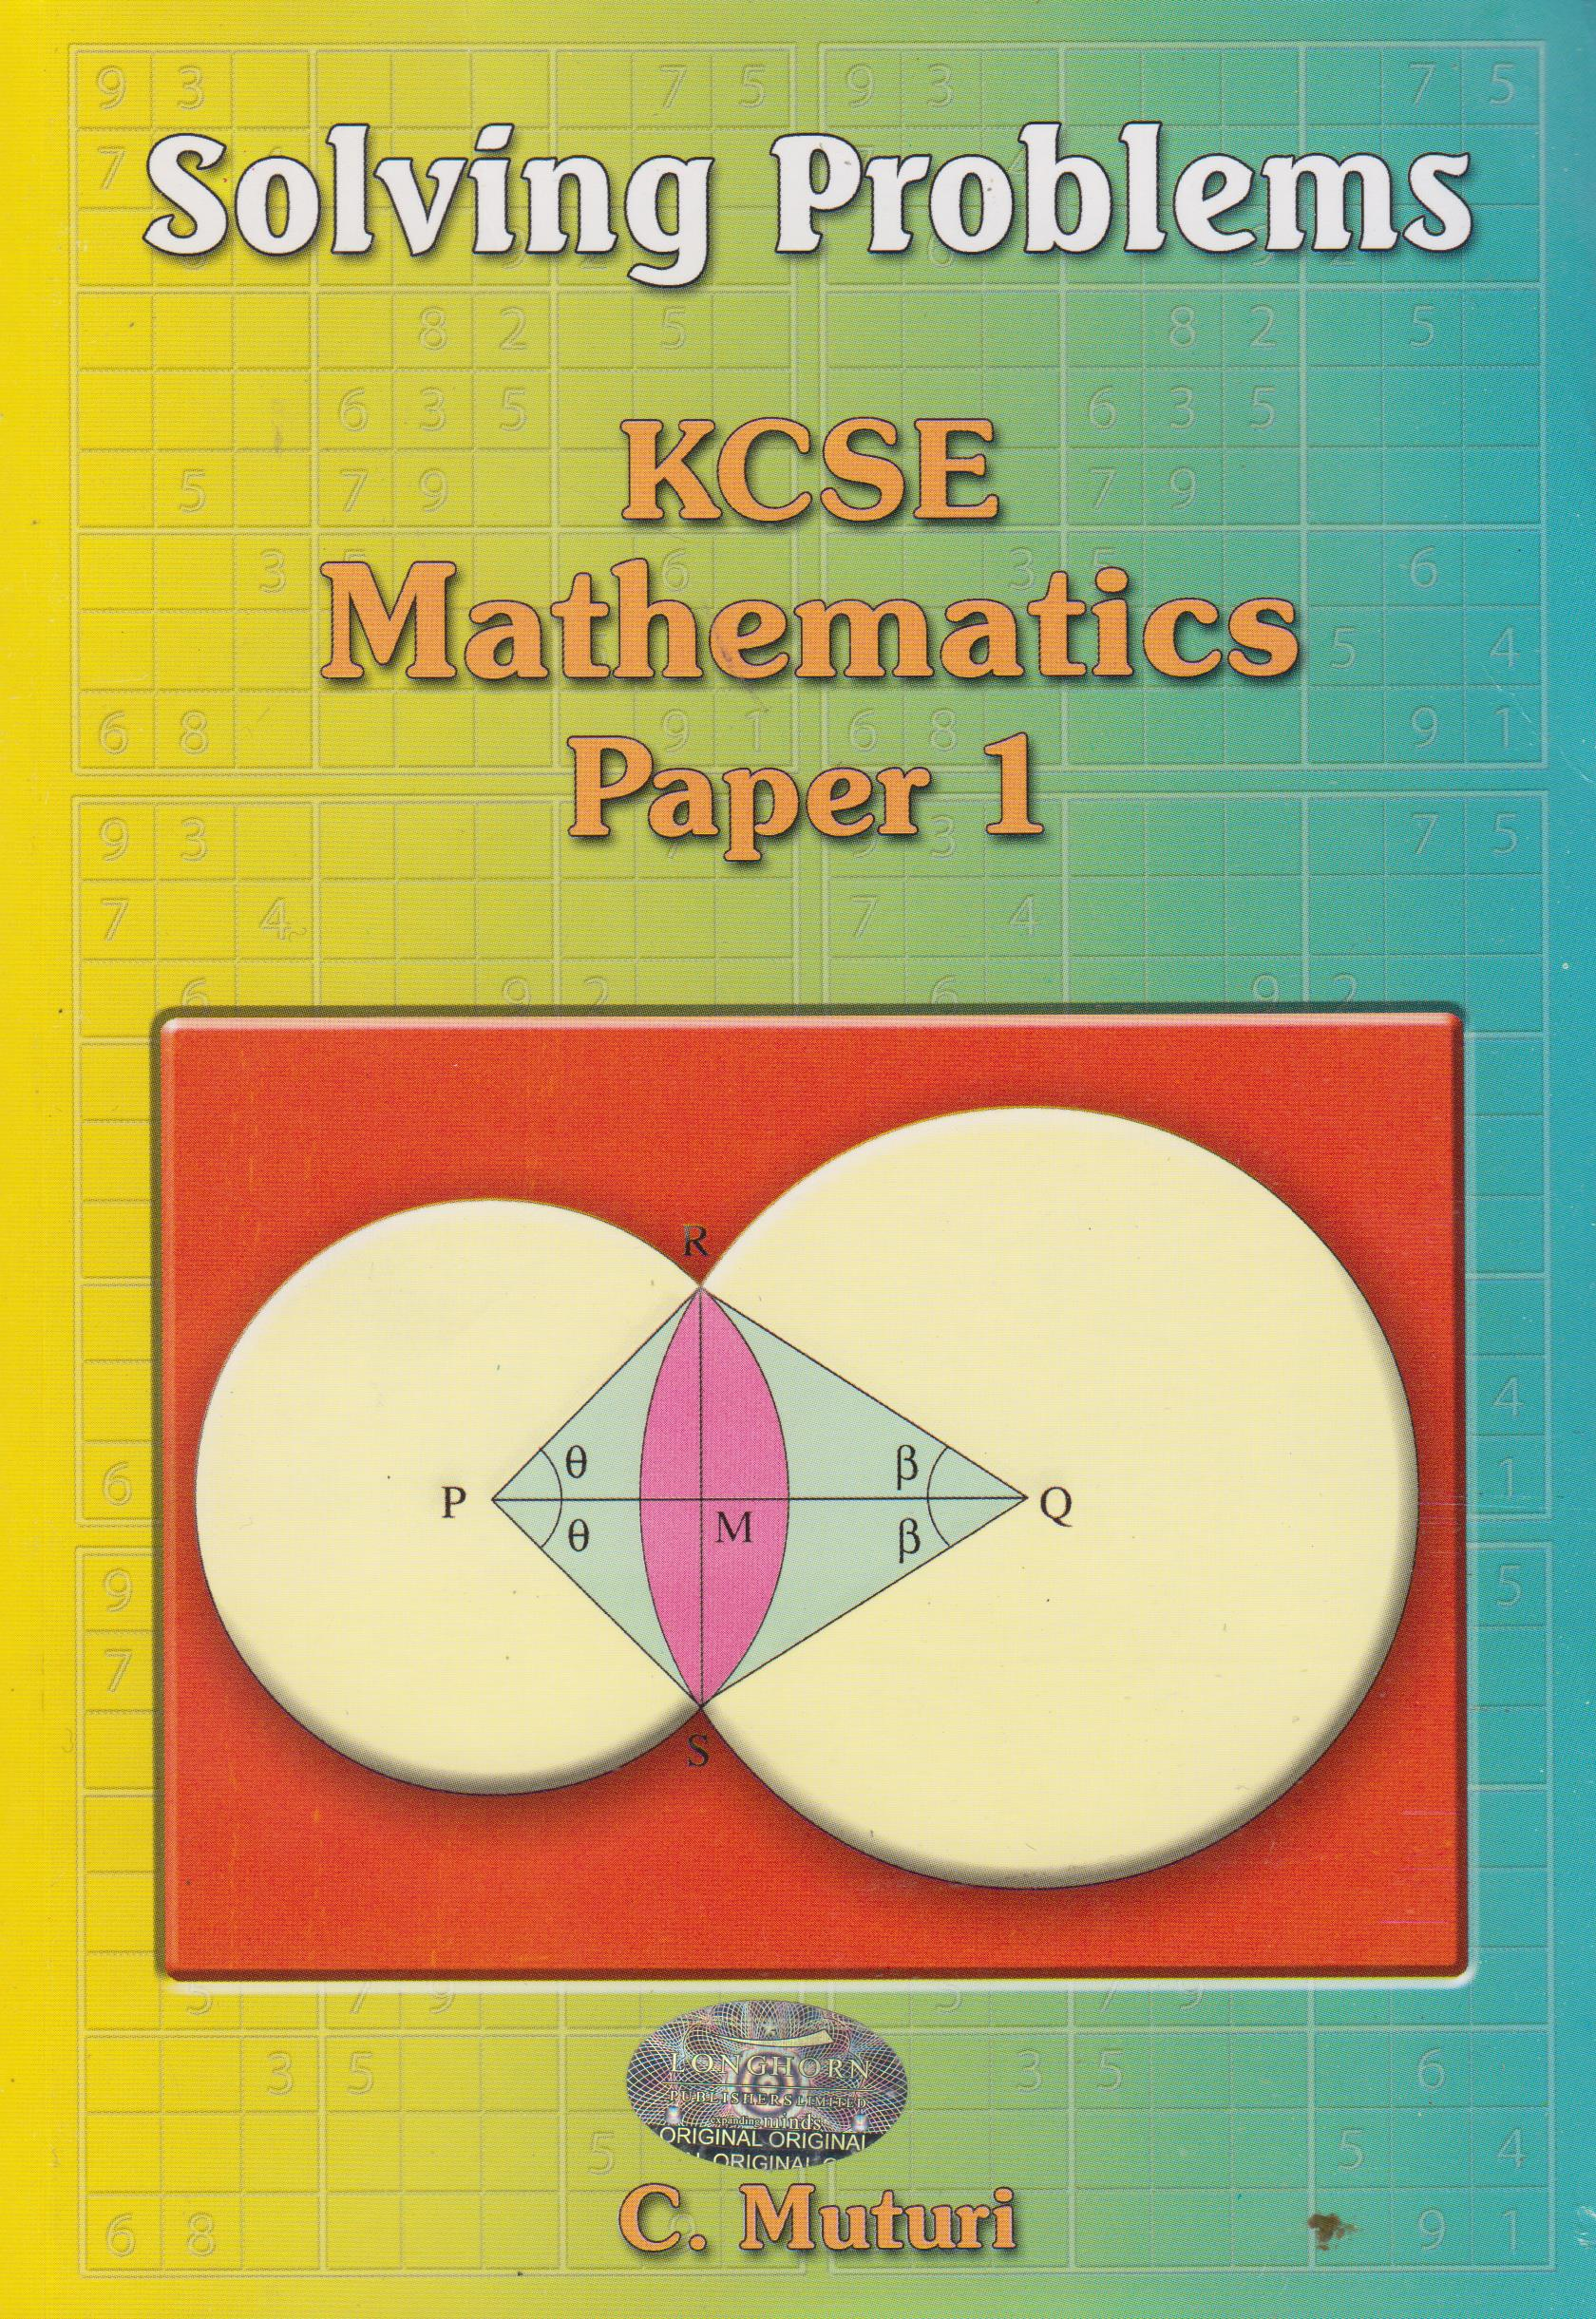 Solving Problems KCSE Mathematics Paper 1 | Books, Stationery, Computers,  Laptops and more  Buy online and get free delivery on orders above Ksh